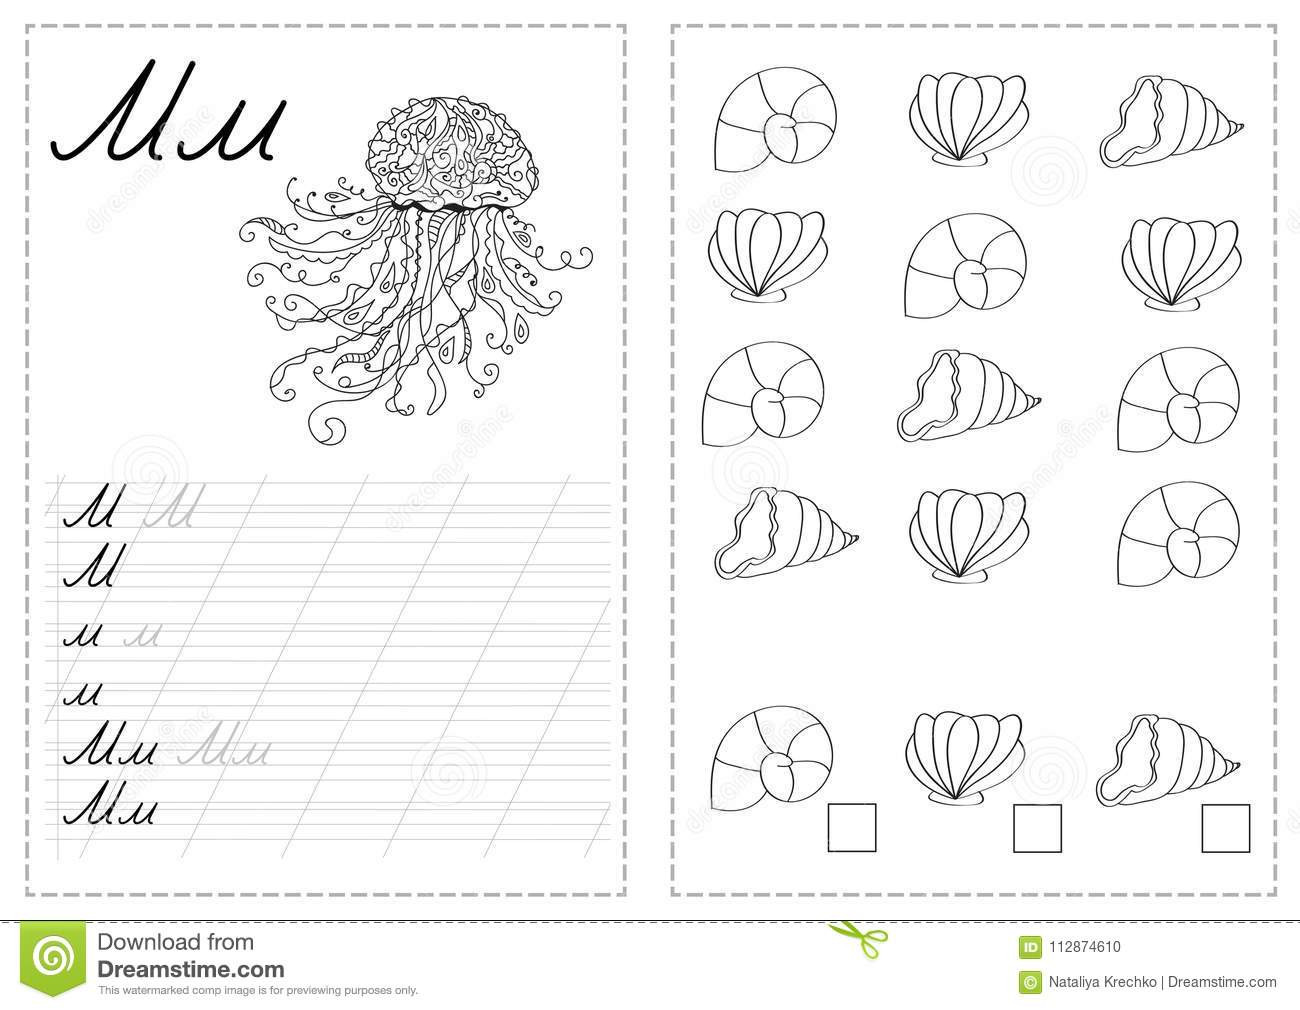 Russian Alphabet Printable Worksheets Alphabet Letters Tracing Worksheet Russian Jellyfish Basic